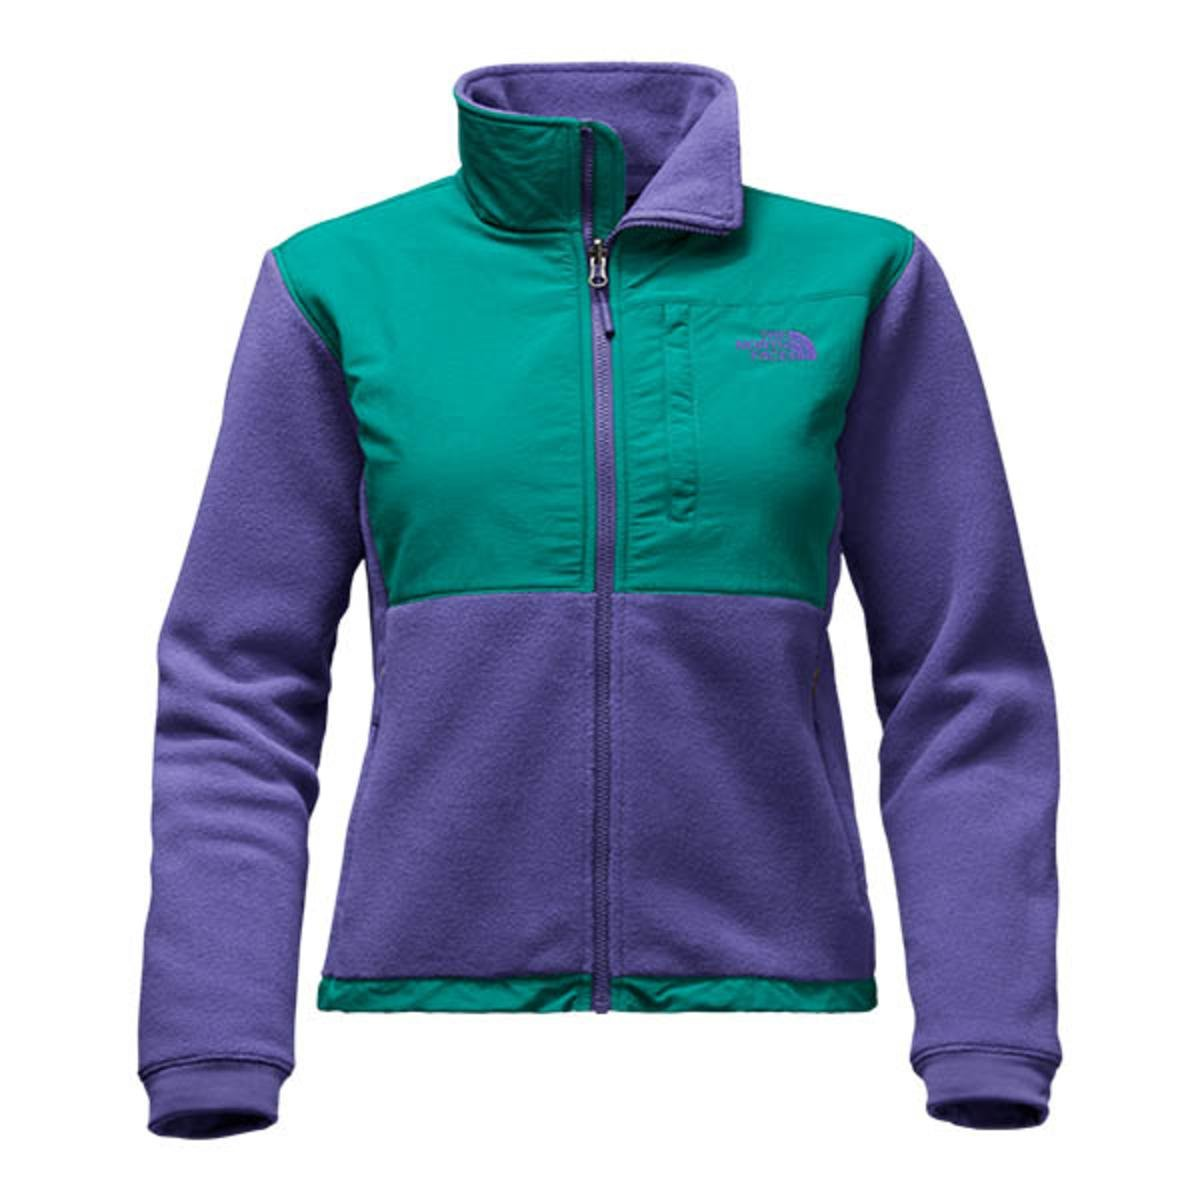 baf038d02 buyr.com - Patagonia Women's Better Sweater 1/4-Zip Fleece (Small ...